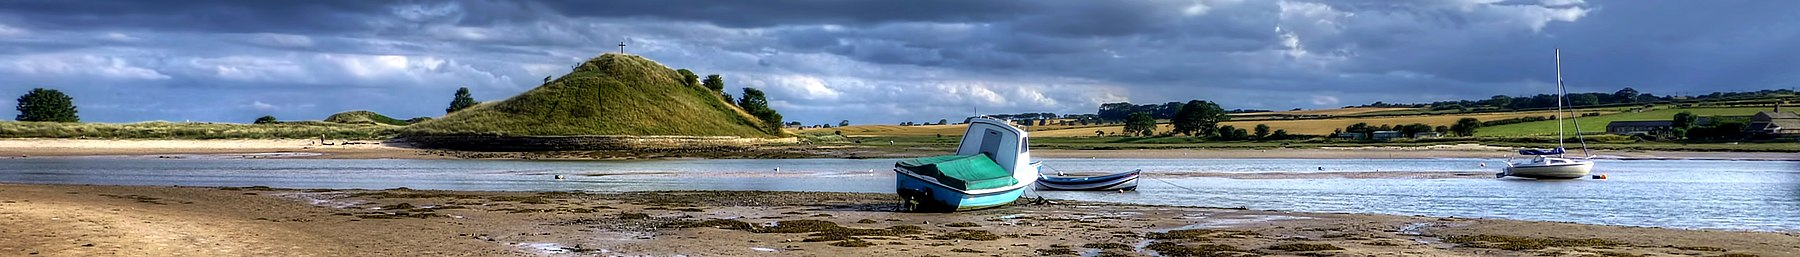 North East England banner River Aln at Alnmouth.jpg